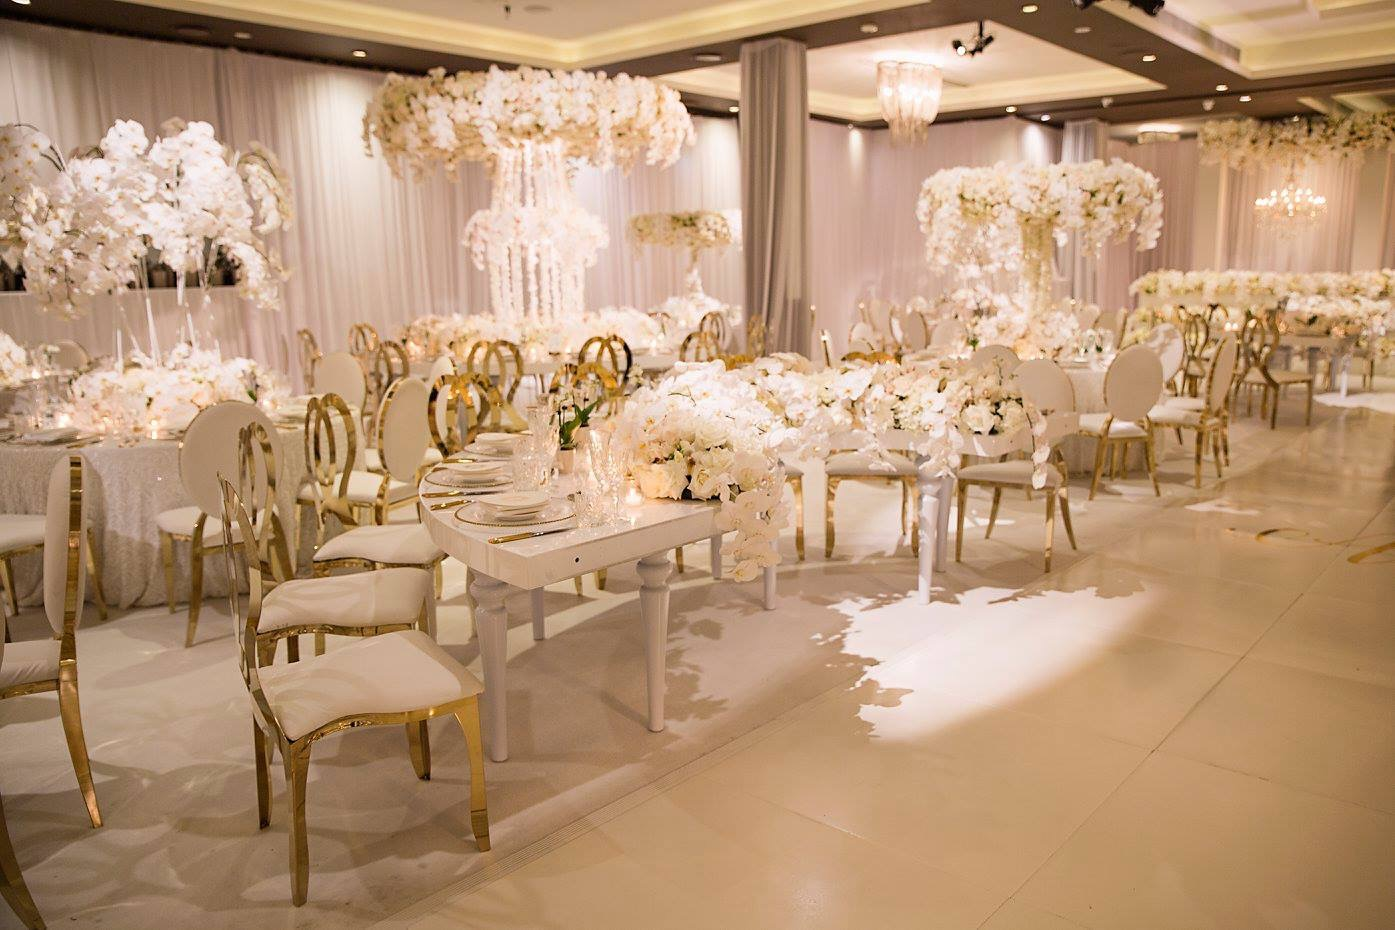 le_montage_luxury_all_white_wedding_linen_gold_chairs_centrepieces.JPG